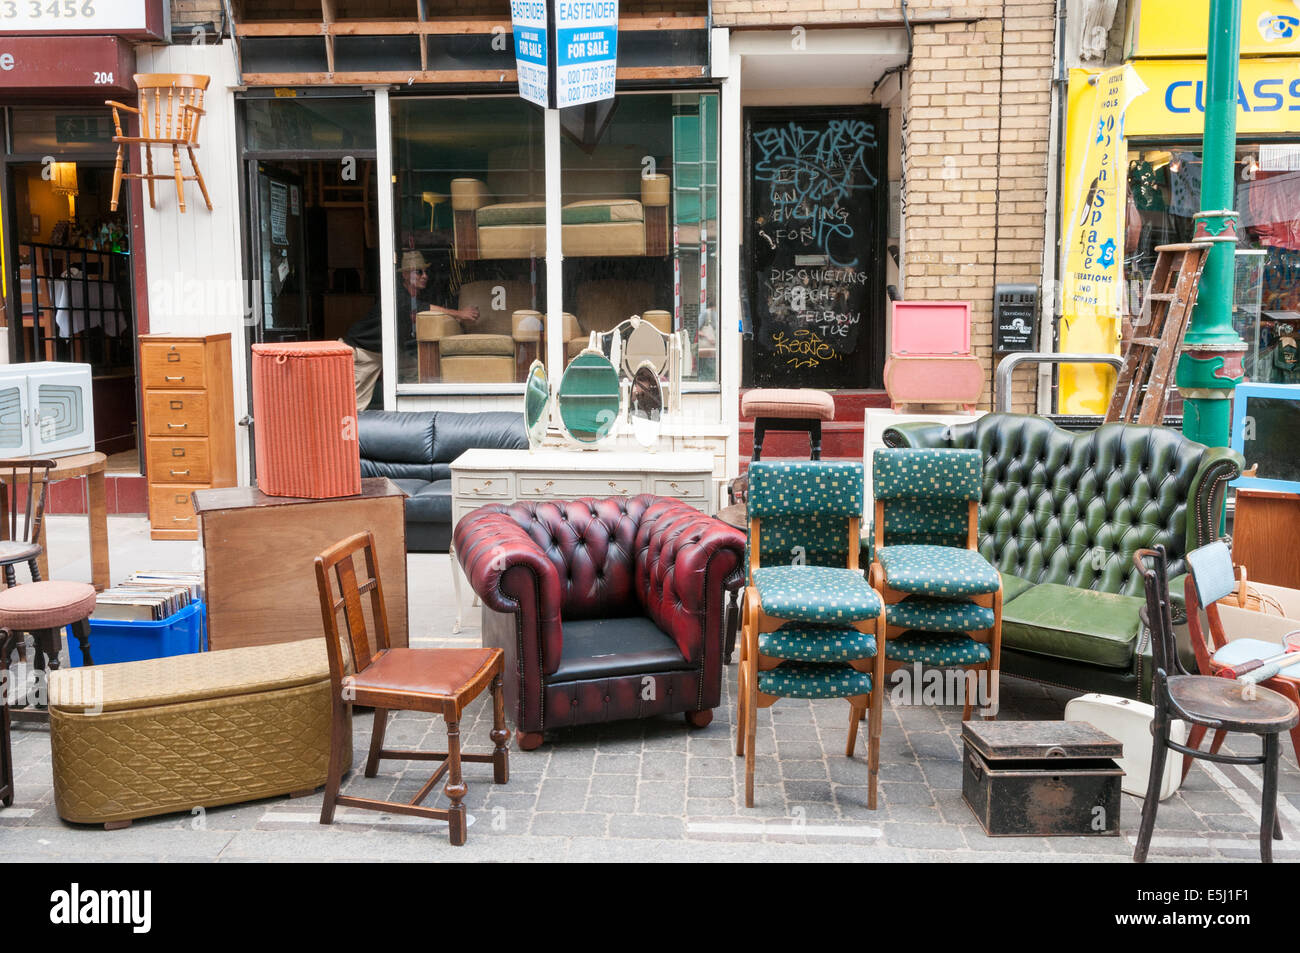 Second hand used furniture for sale on Brick Lane, Tower Hamlets, London,  England